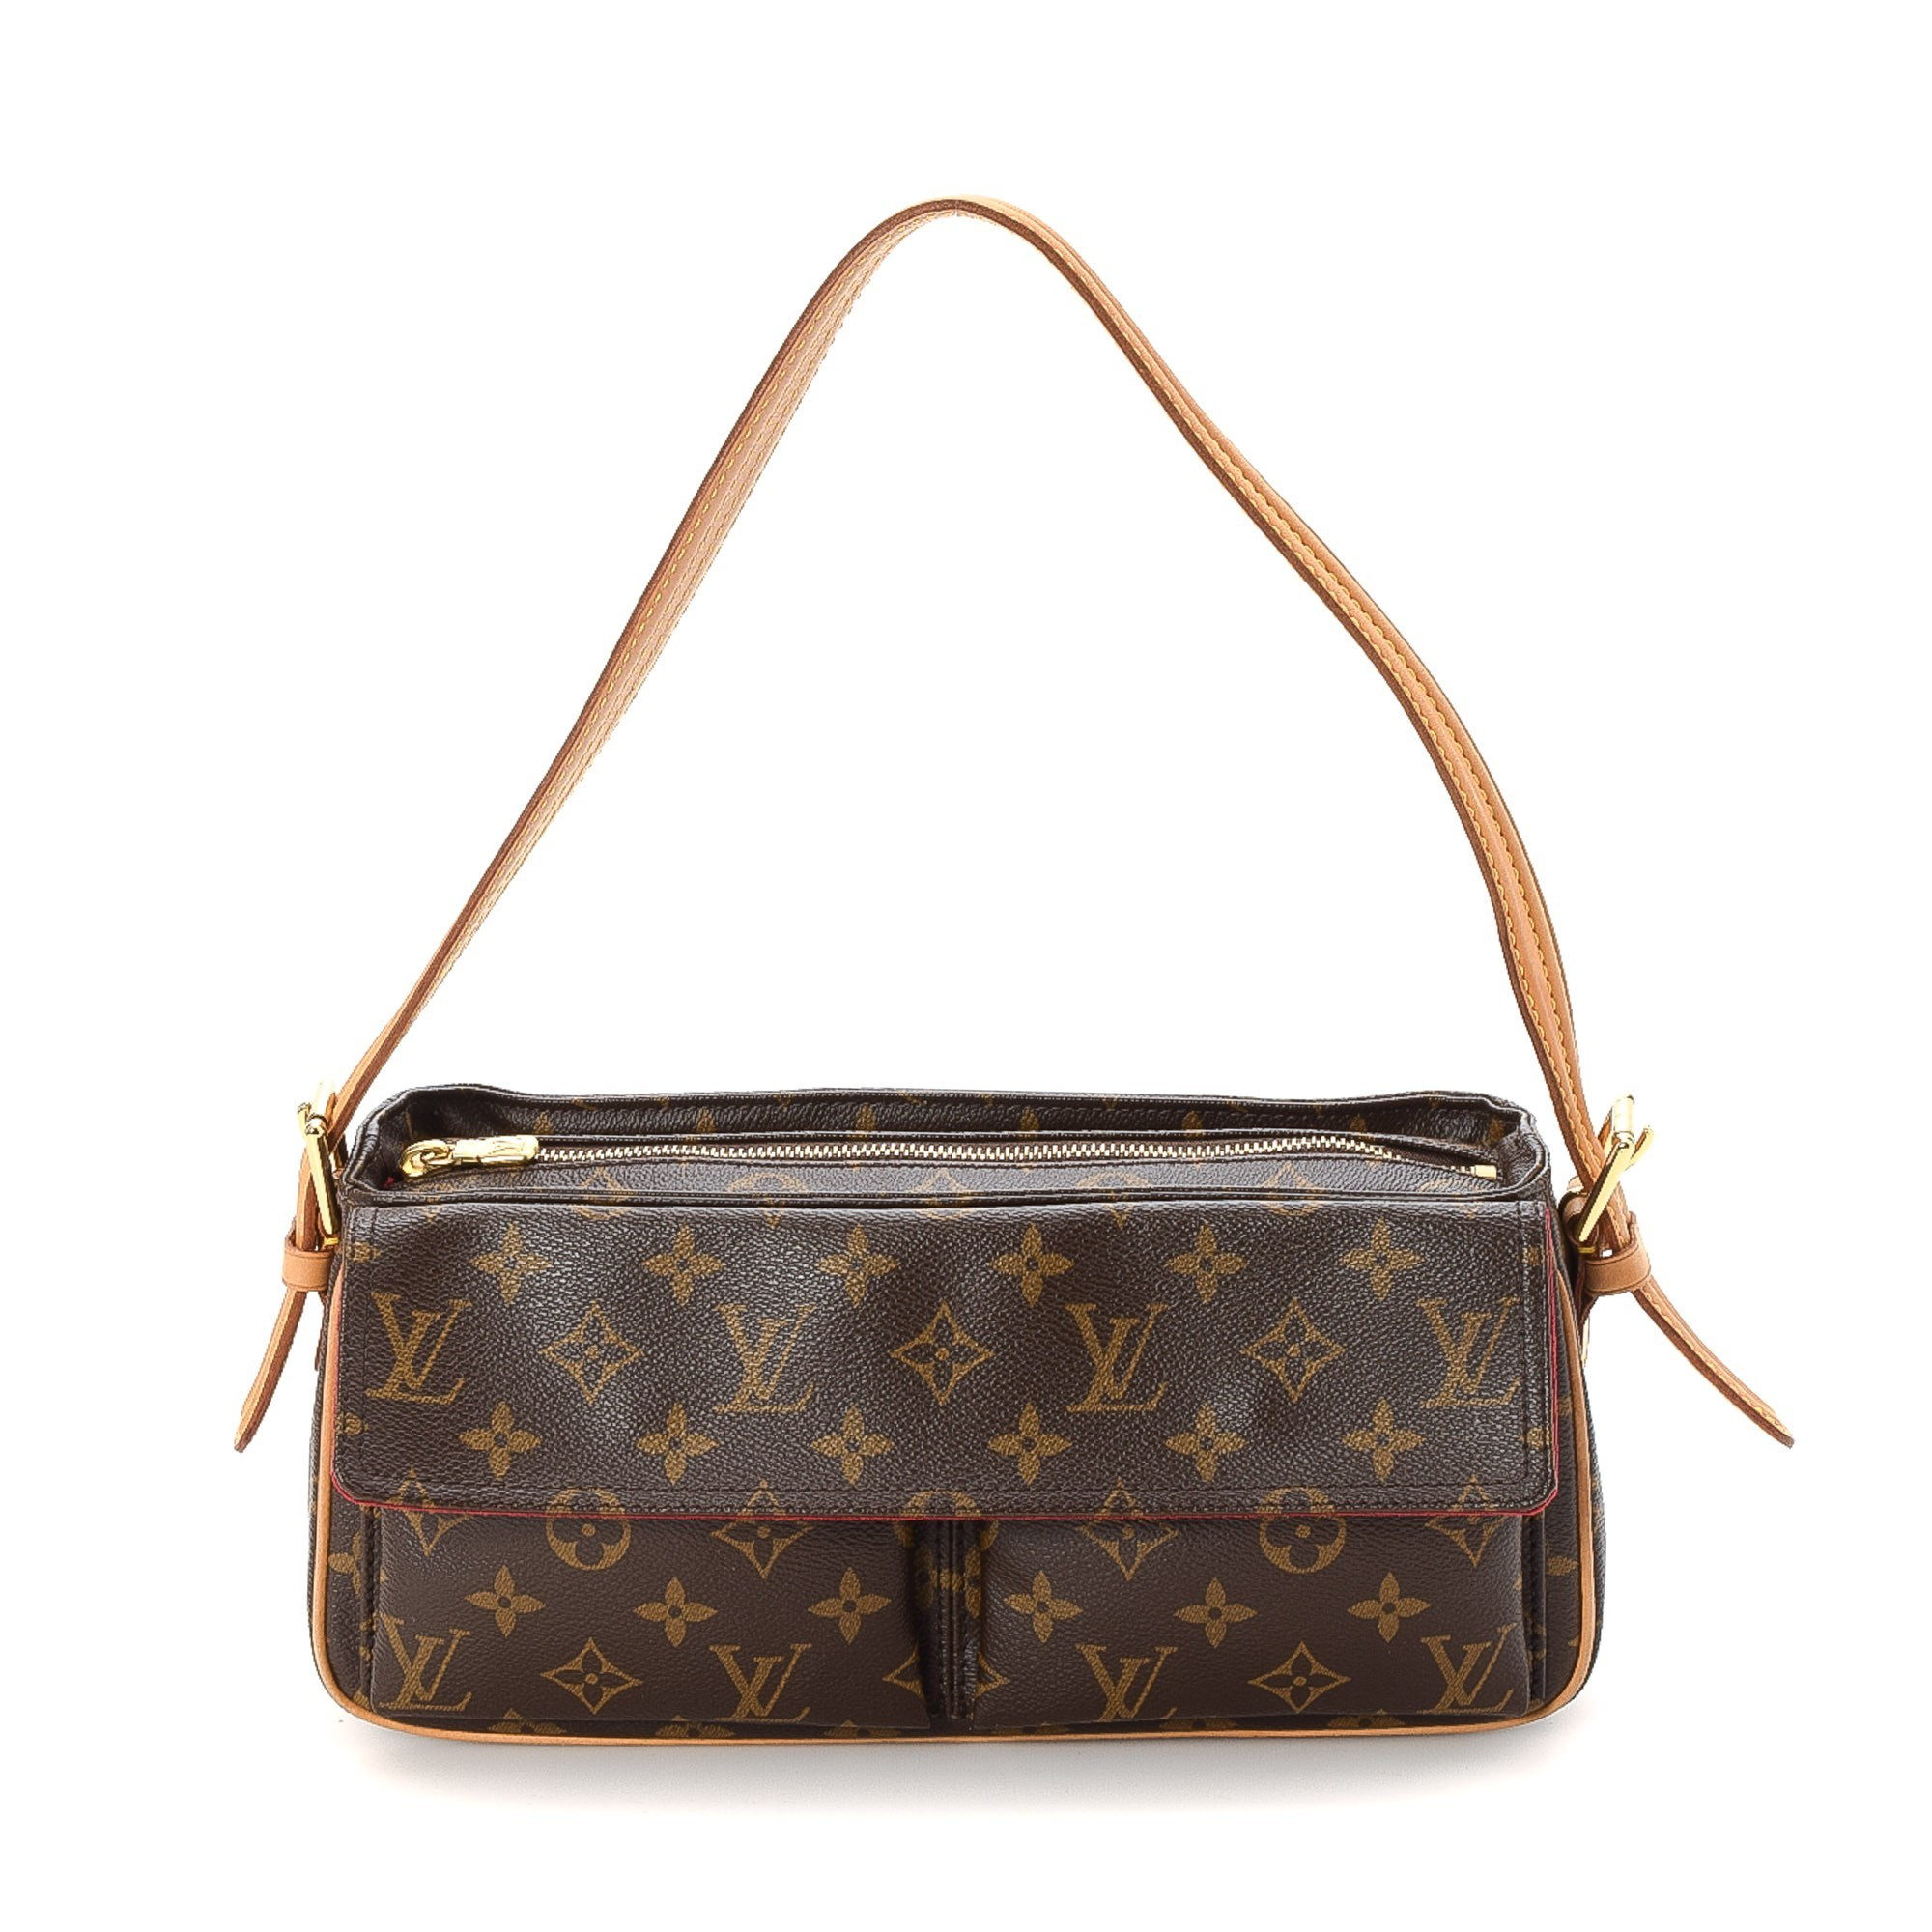 Louis Vuitton Viva-cite MM Monogram Brown Coated Canvas Shoulder Bag LXRCO